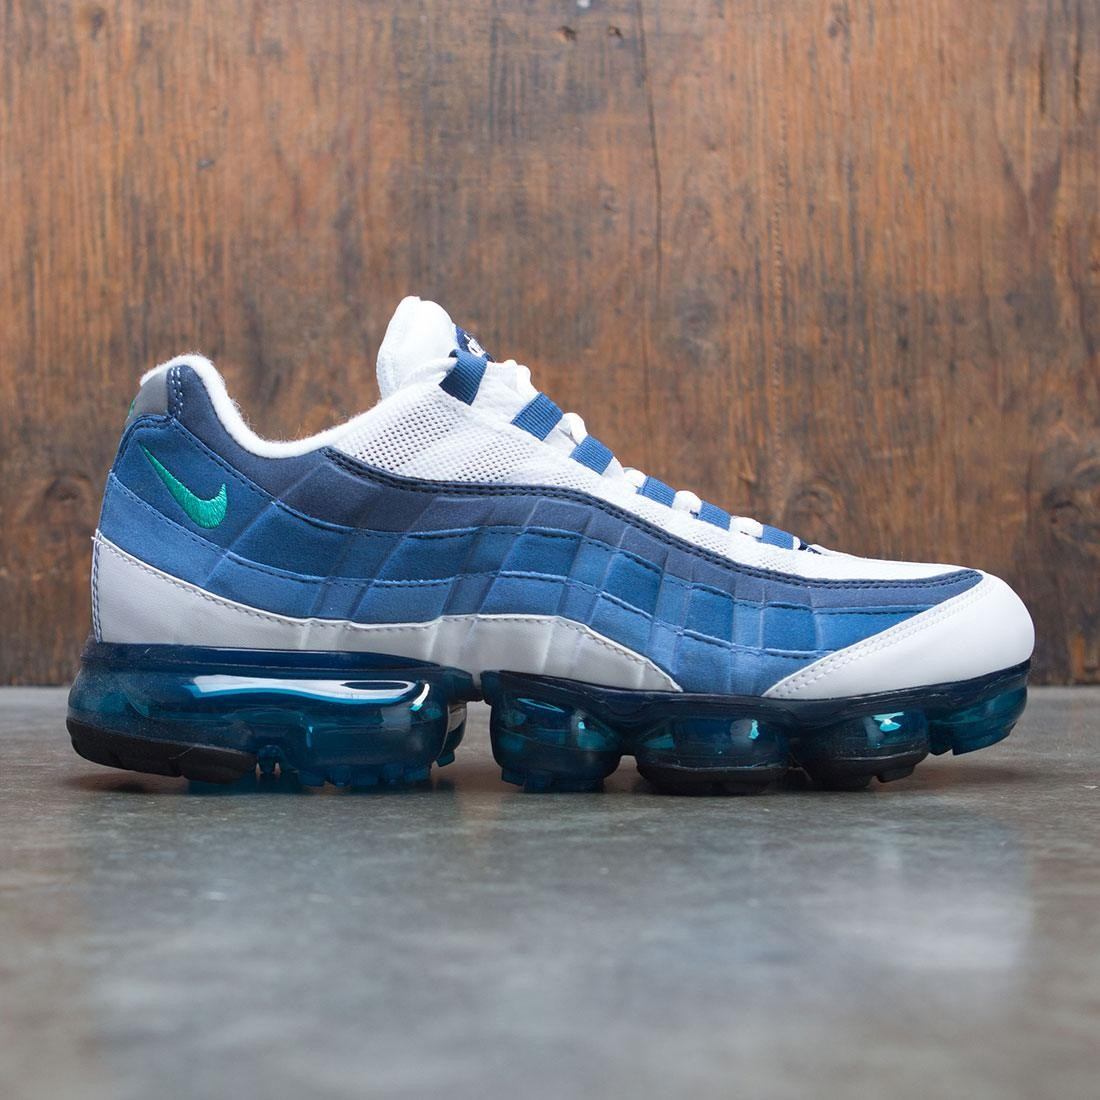 3d7b43b79cd4 ... get nike men air vapormax 95 white new green french blue lake blue  d01c3 80dfc